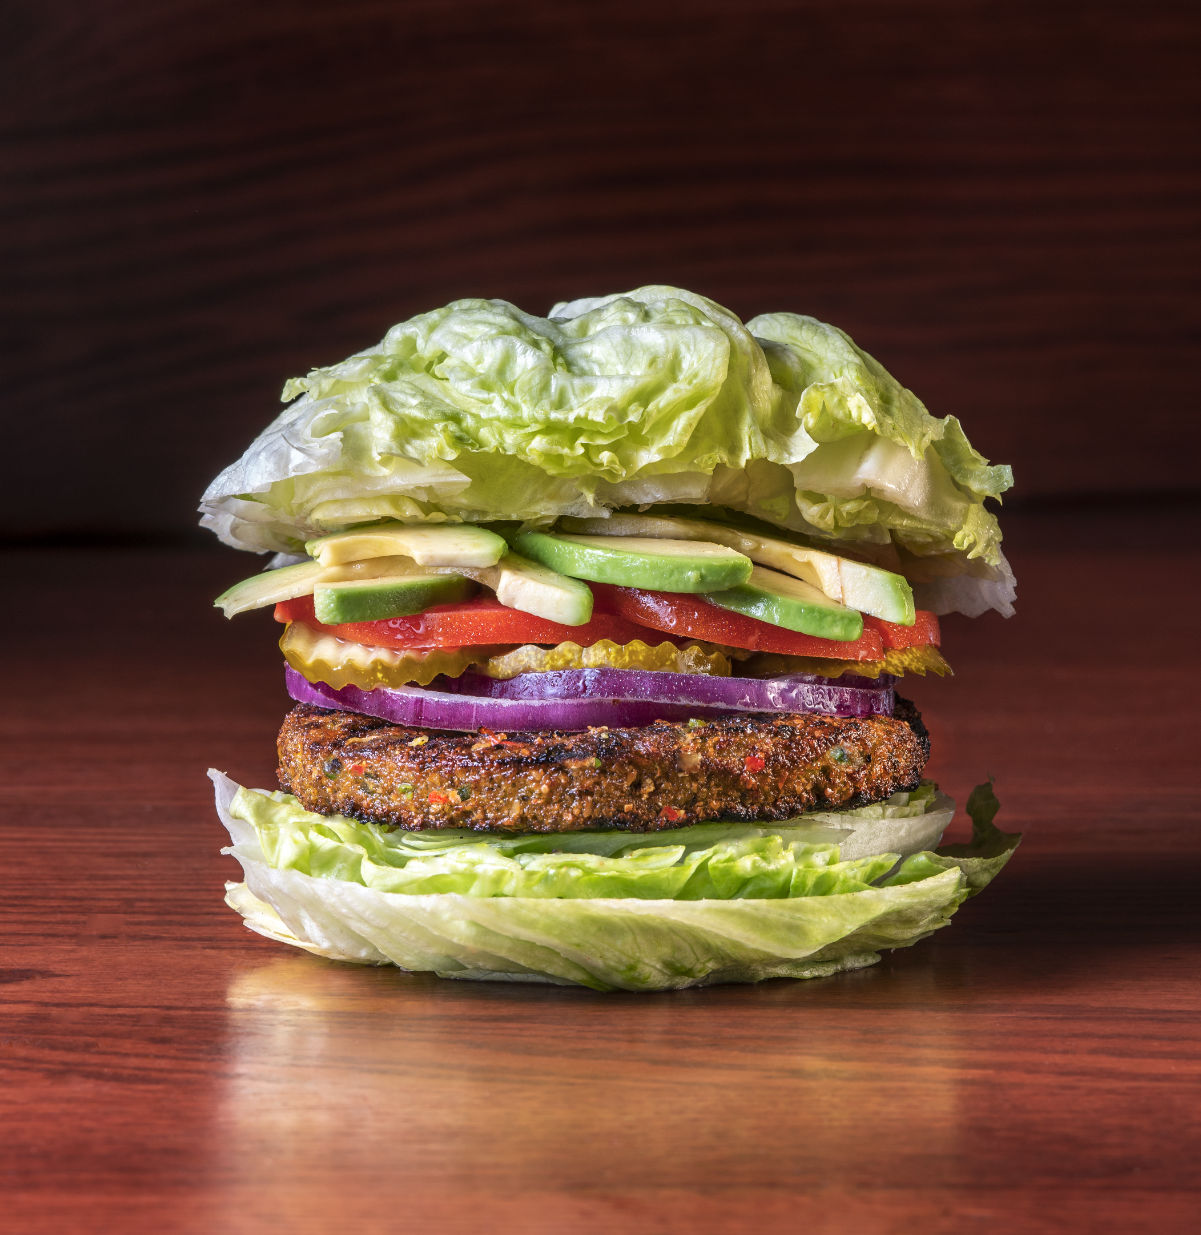 The look of the new Smokey Bones Vegan burger. Just a great tasty creation at Smokey Bones..